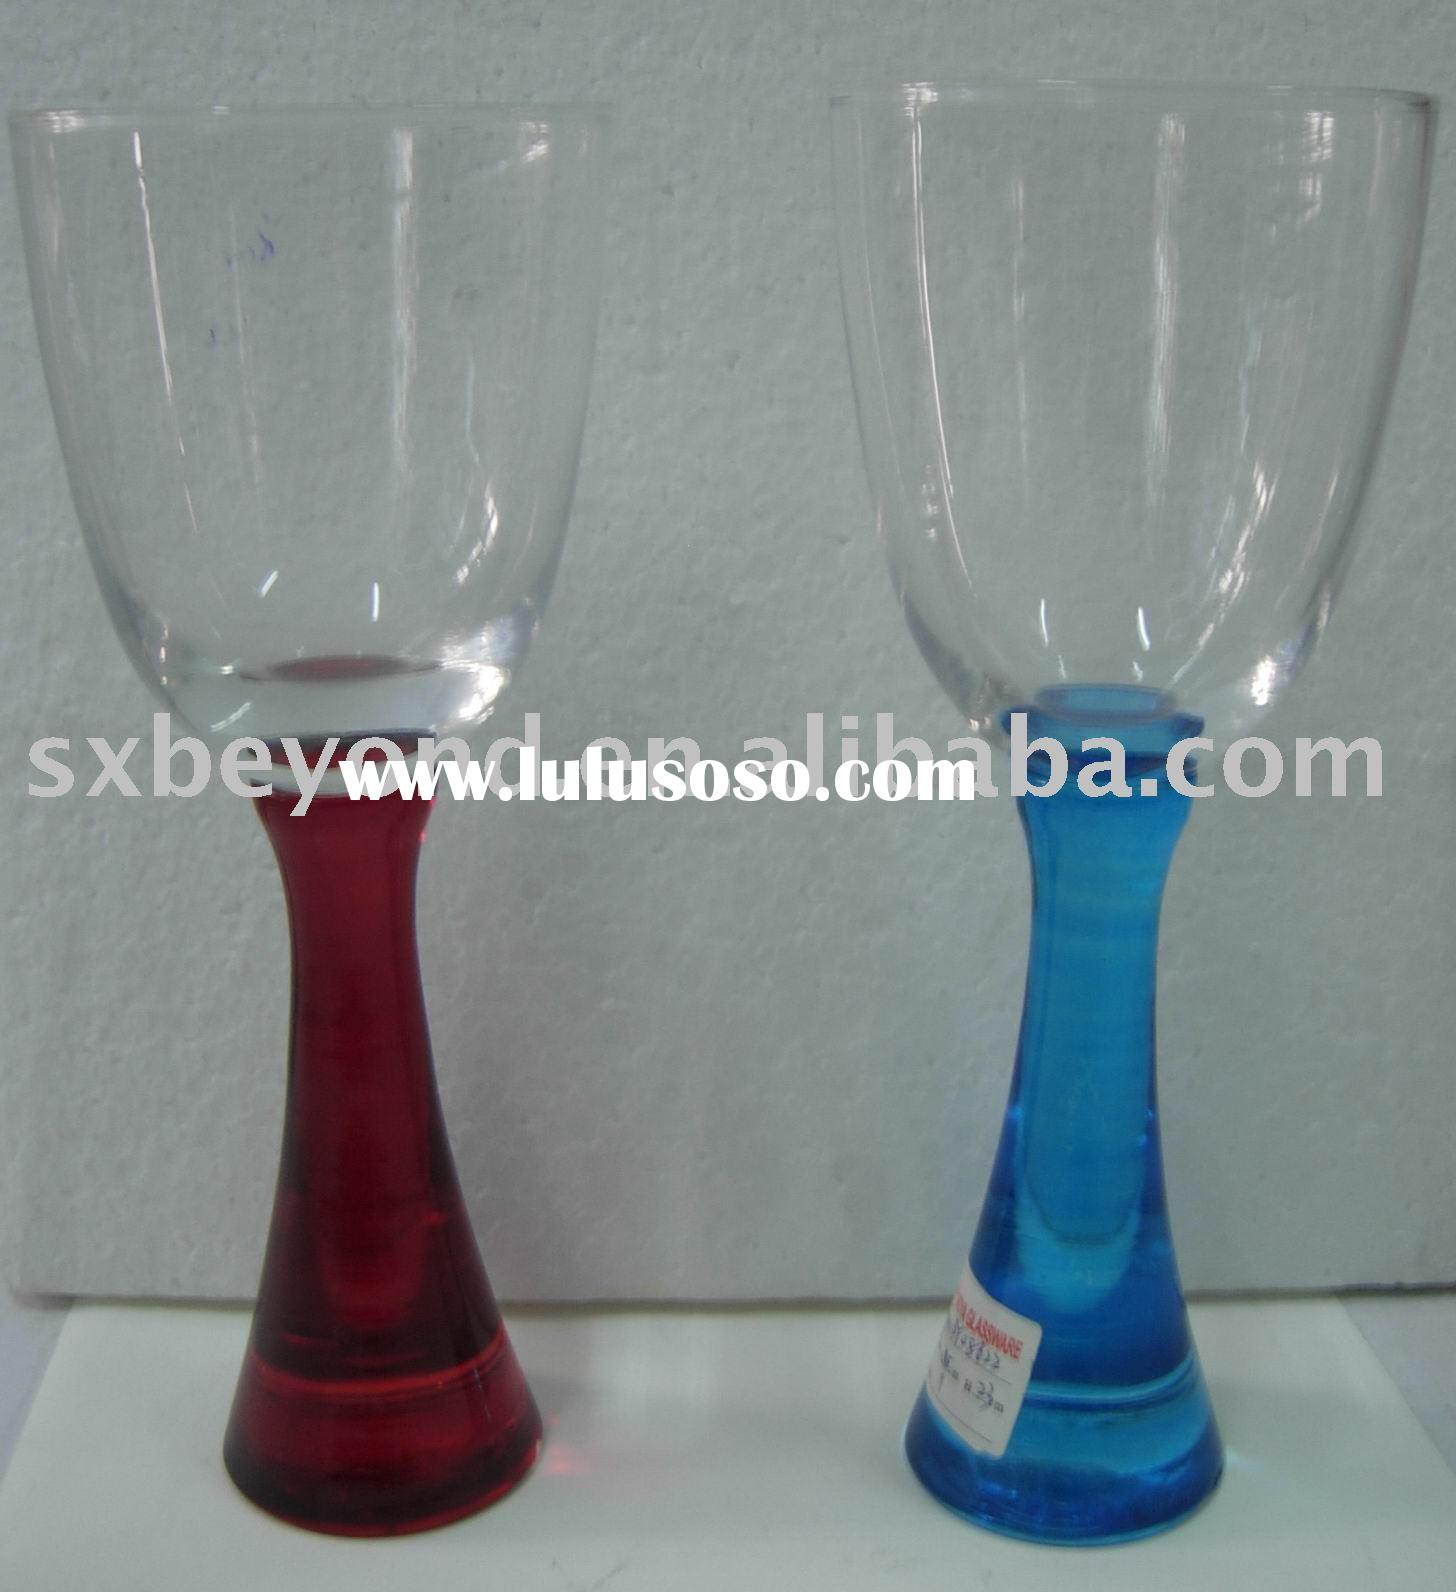 Stem wine glass stem wine glass manufacturers in page 1 - Wine glasses with thick stems ...